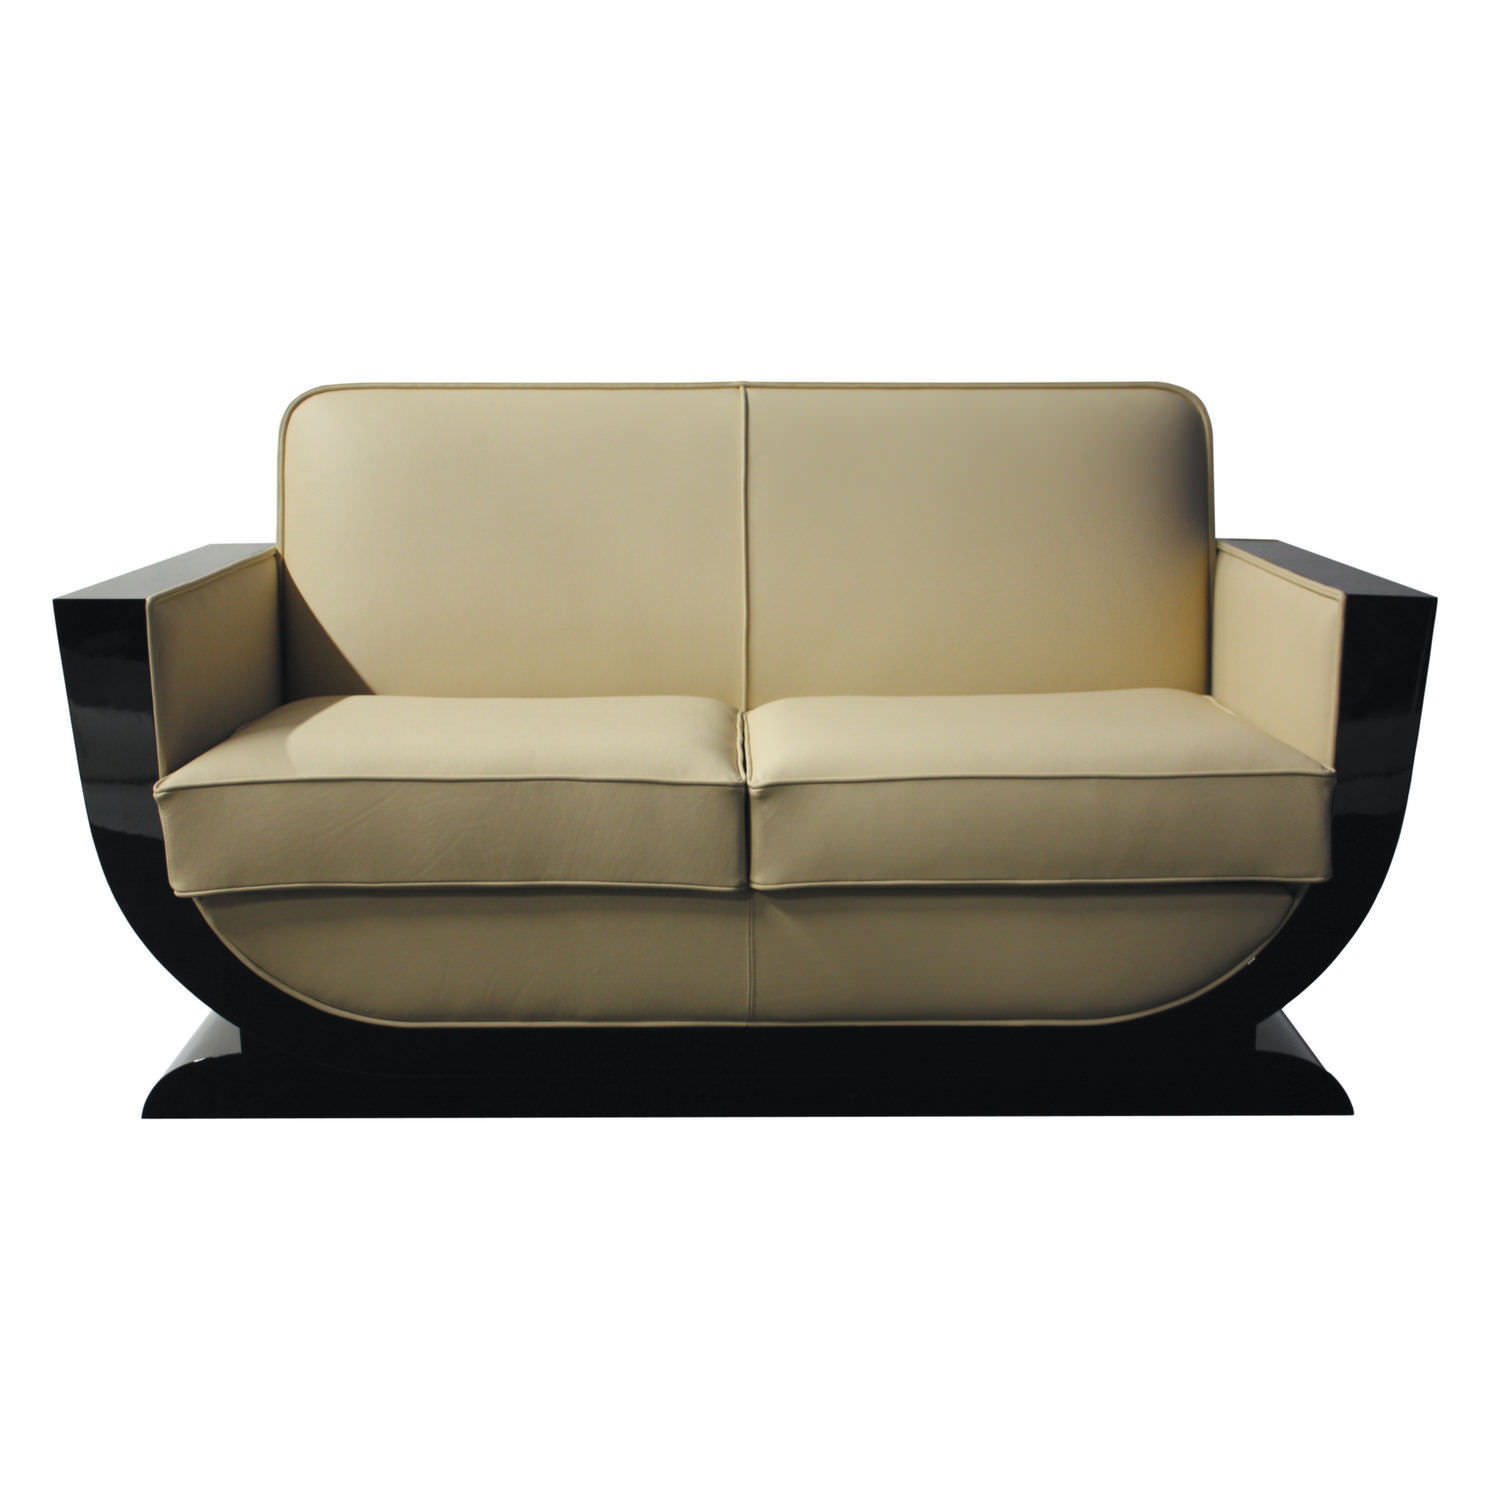 Bettsofa Holzgestell Sofa Art Deco Leder Holz Stoff Sf085 Cygal Art Deco